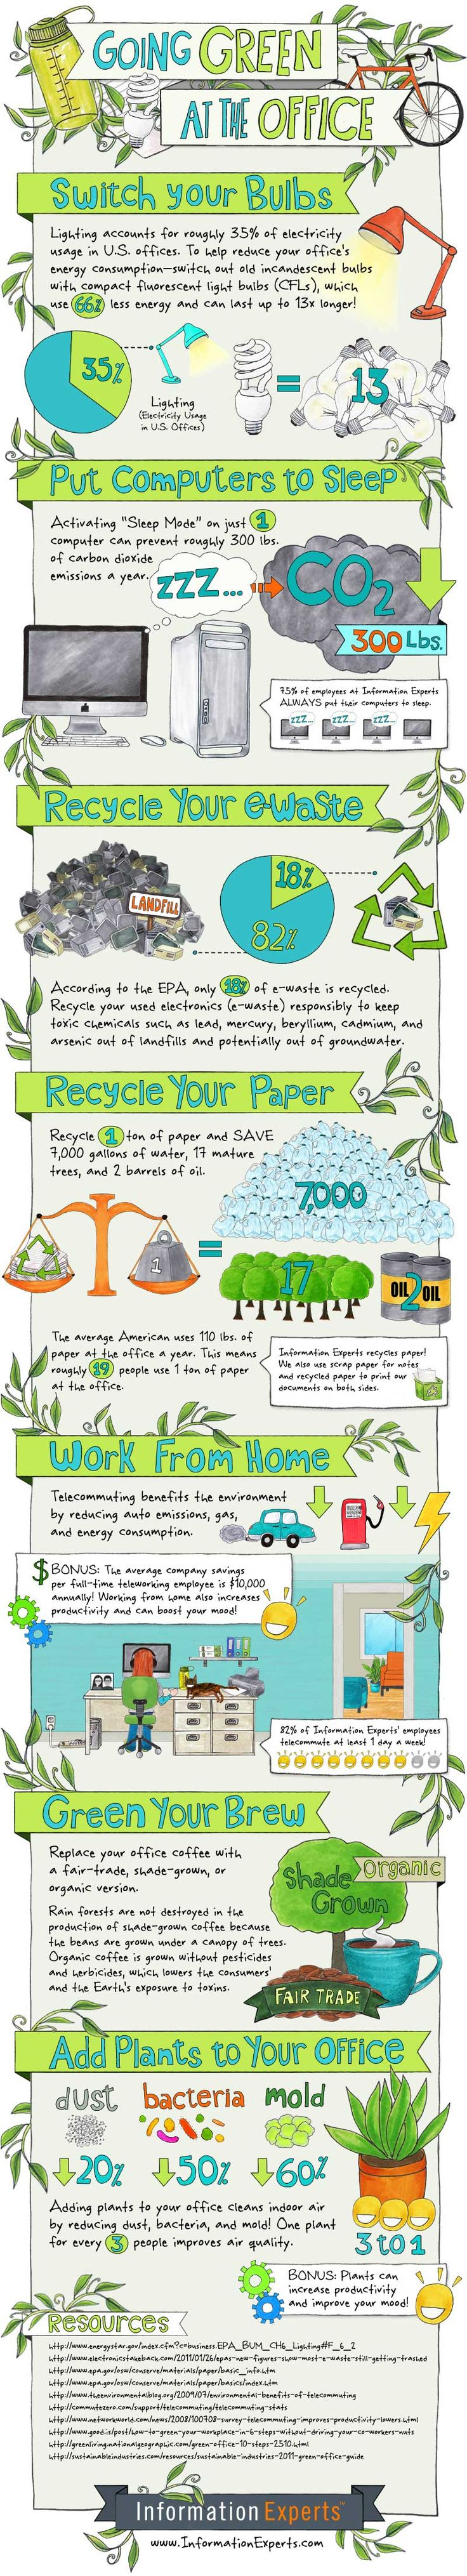 How to reduce waste at the office ! Pretty good #infographic but consider shutting down your computer instead of putting it to sleep.